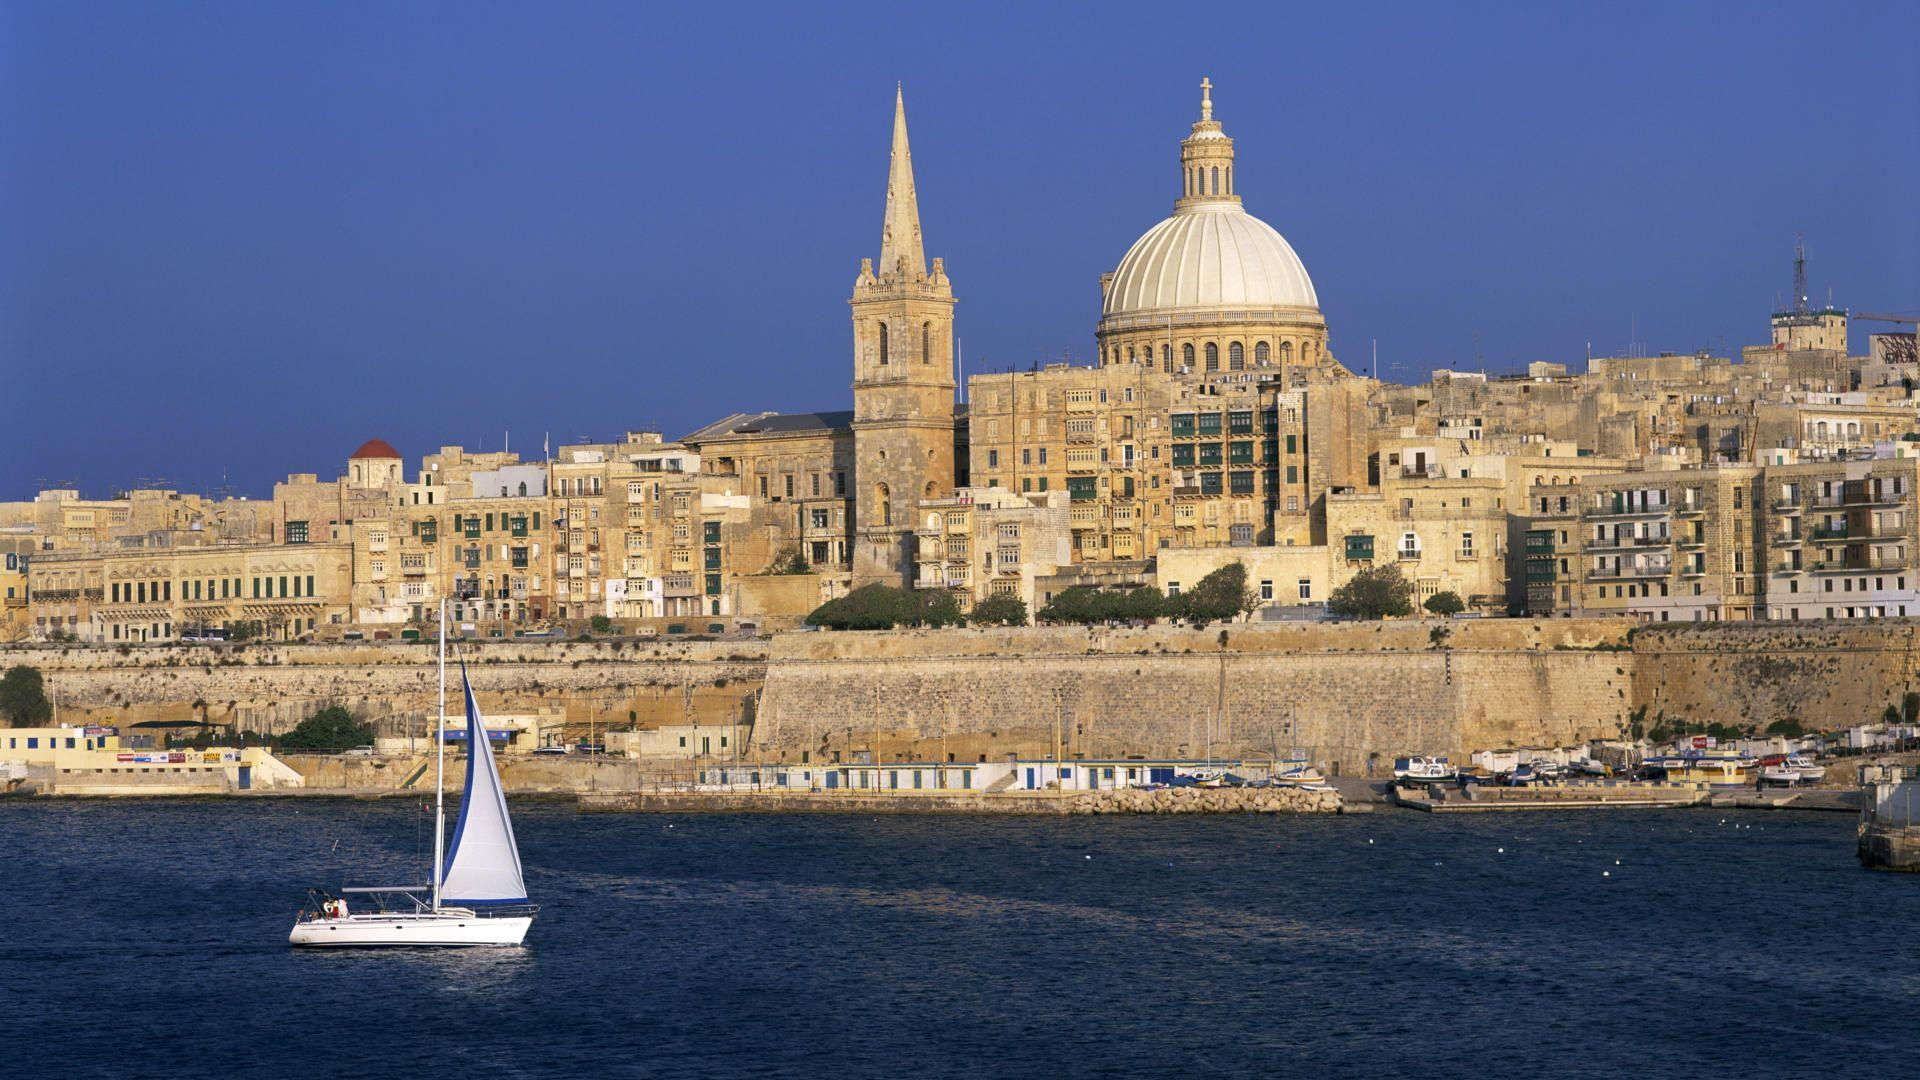 Malta Valletta | Free Travel wallpapers